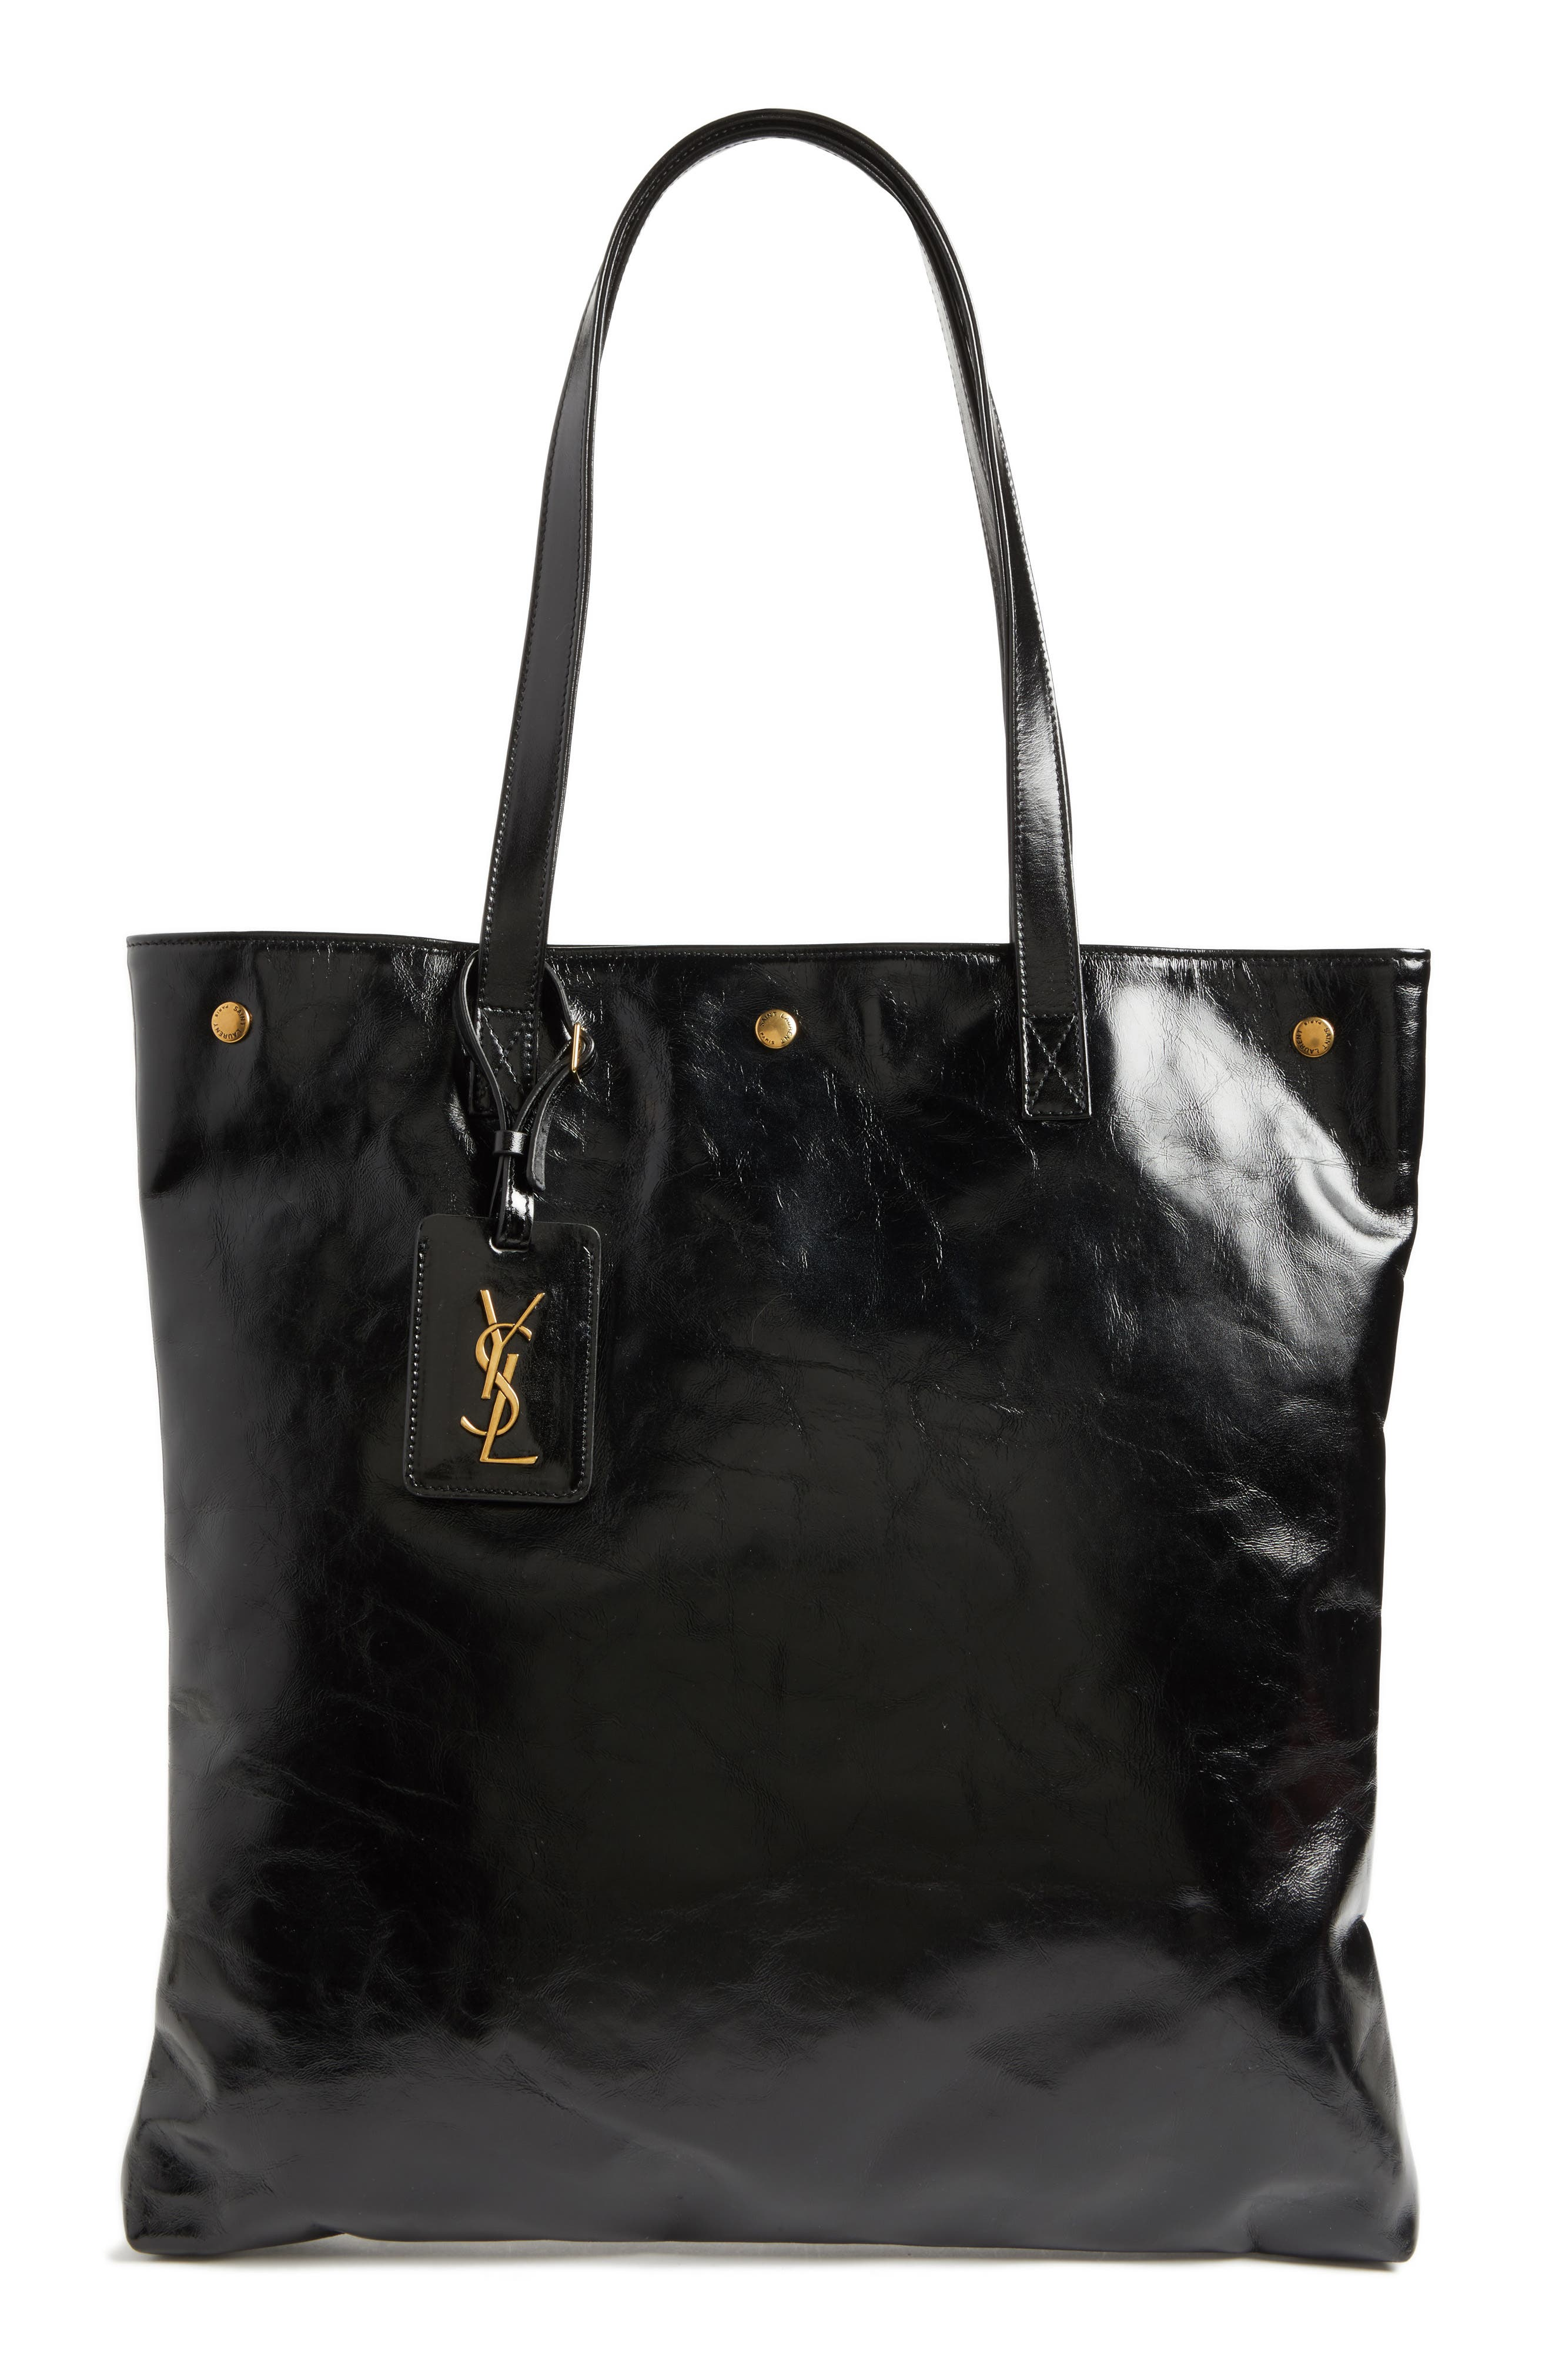 SAINT LAURENT Noe Glacé Moroder Leather Tote